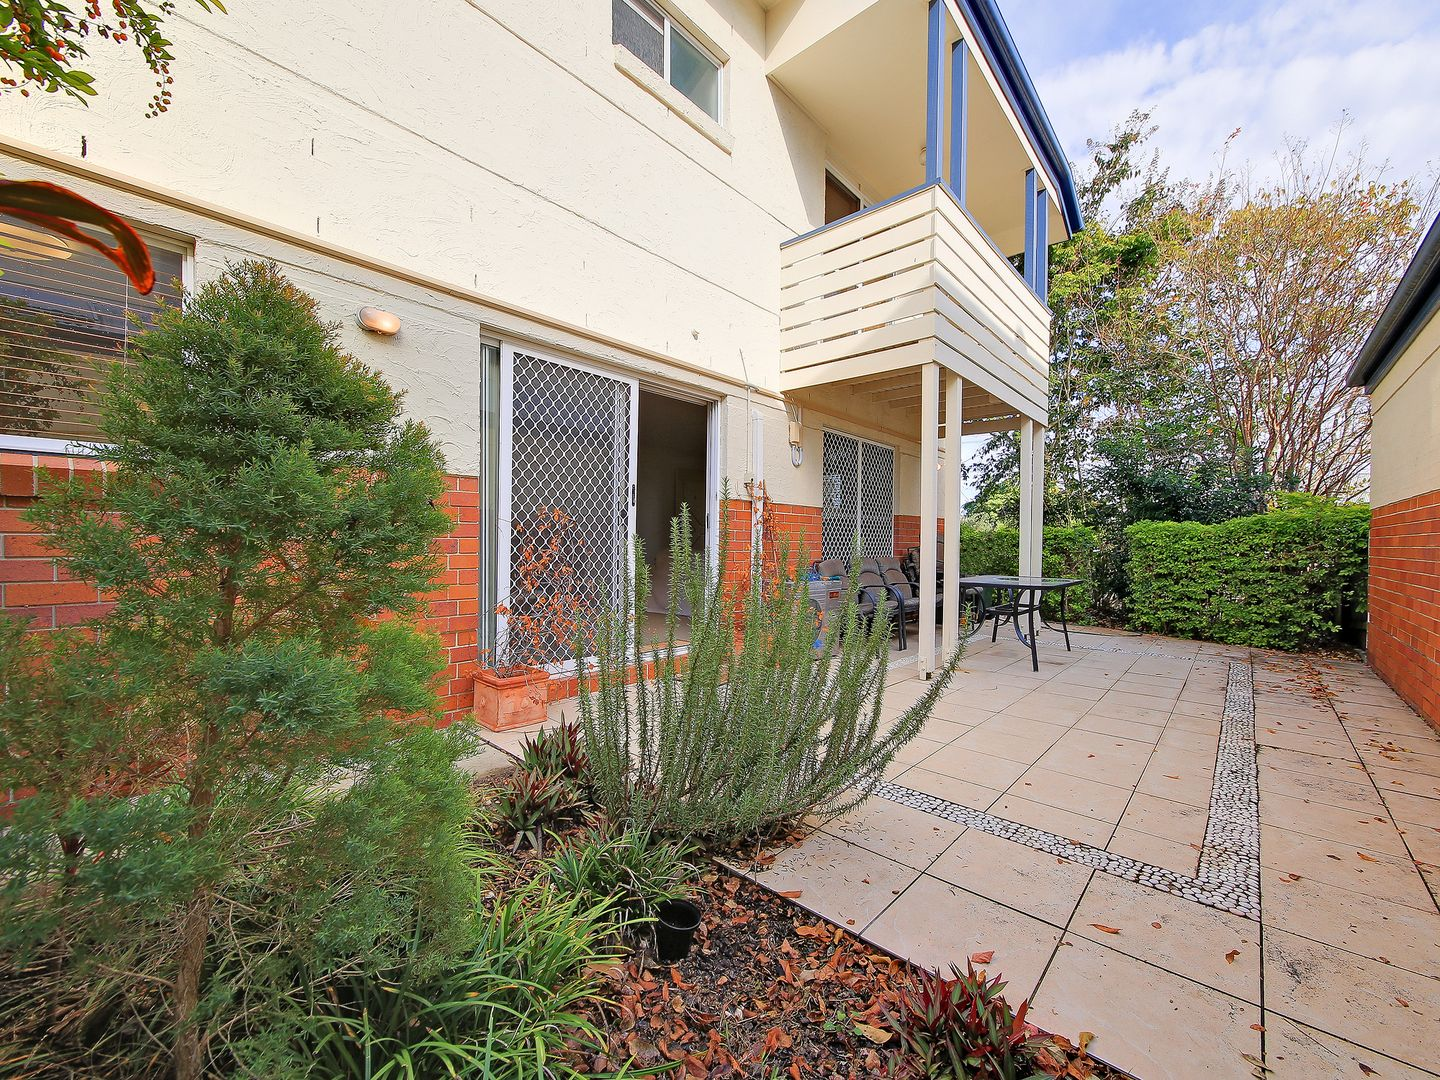 2/177 Stanley Road, Carina QLD 4152, Image 0